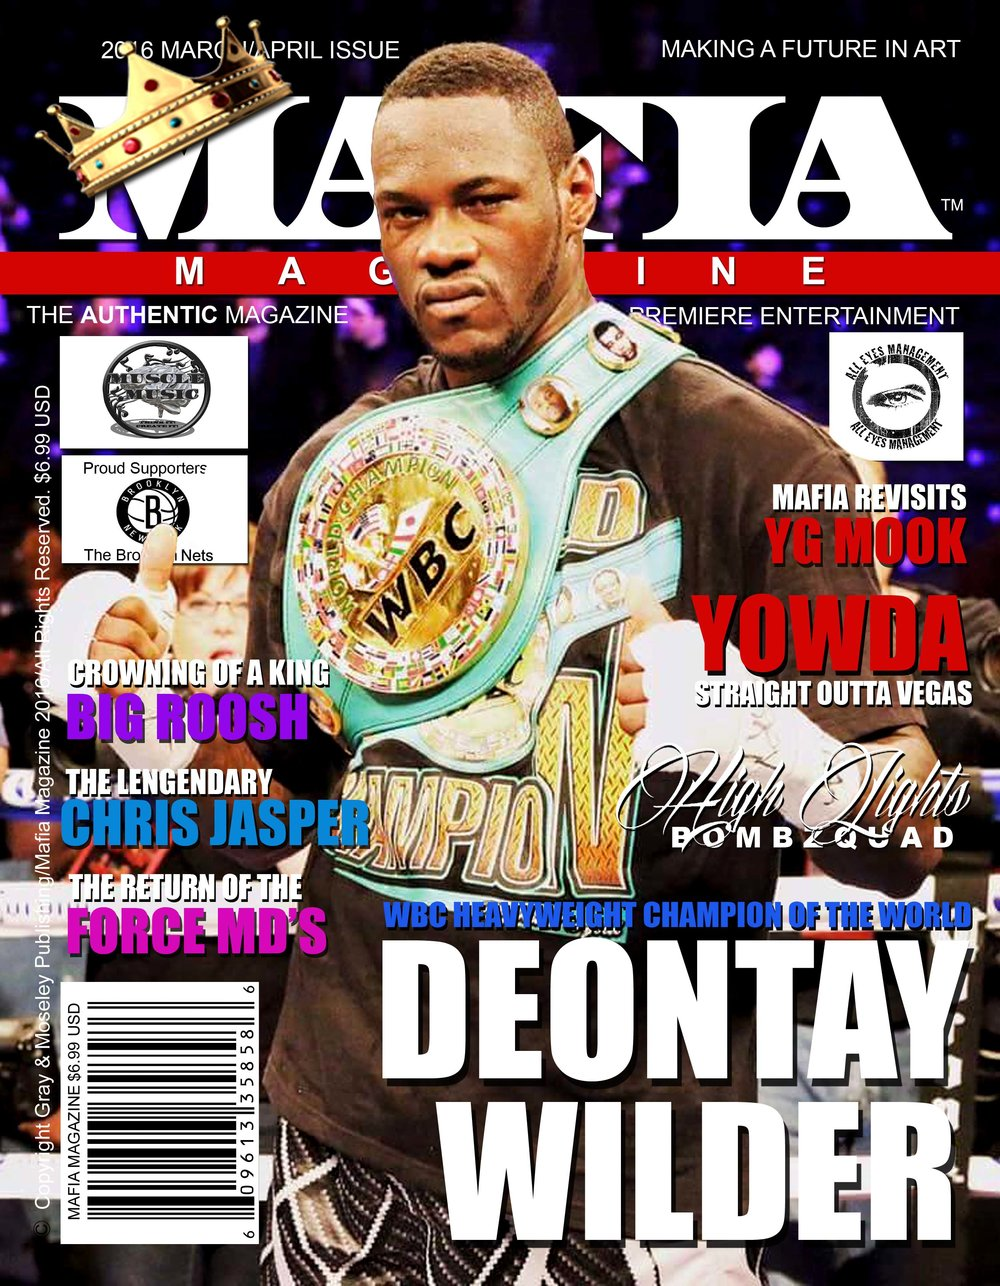 2016 MARCH ISSUE Deontay Wilder BombSquad High Lights Final.jpg